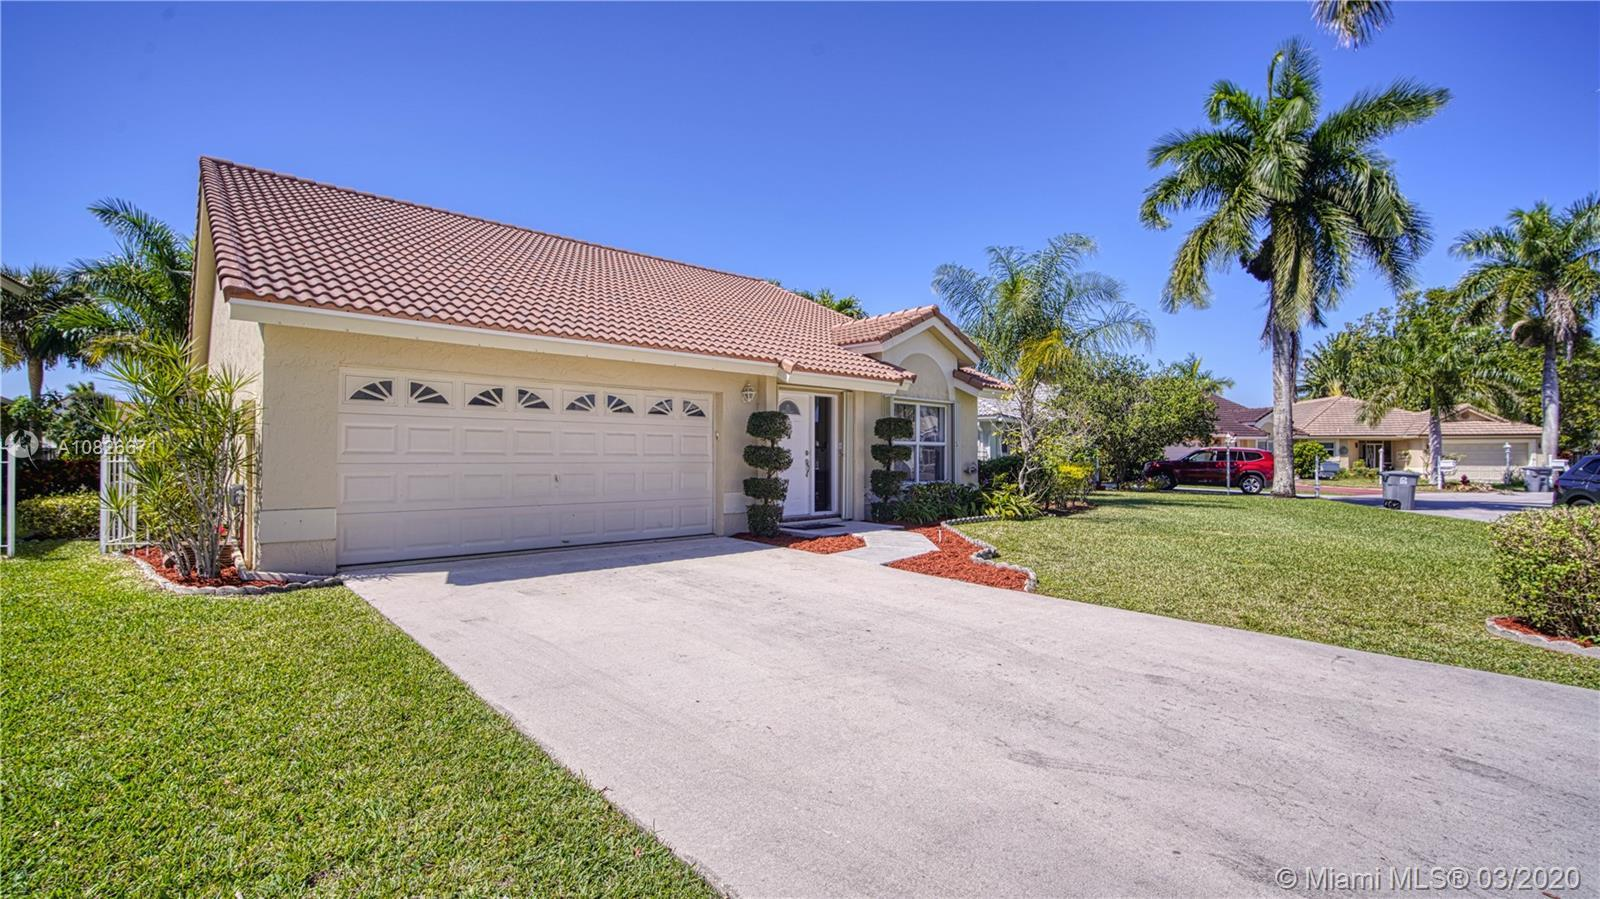 Beautiful Lake view Home 3 Bed/2 Bath. Home cul-de-sac in the nicest community in Boca Raton BOCA CH